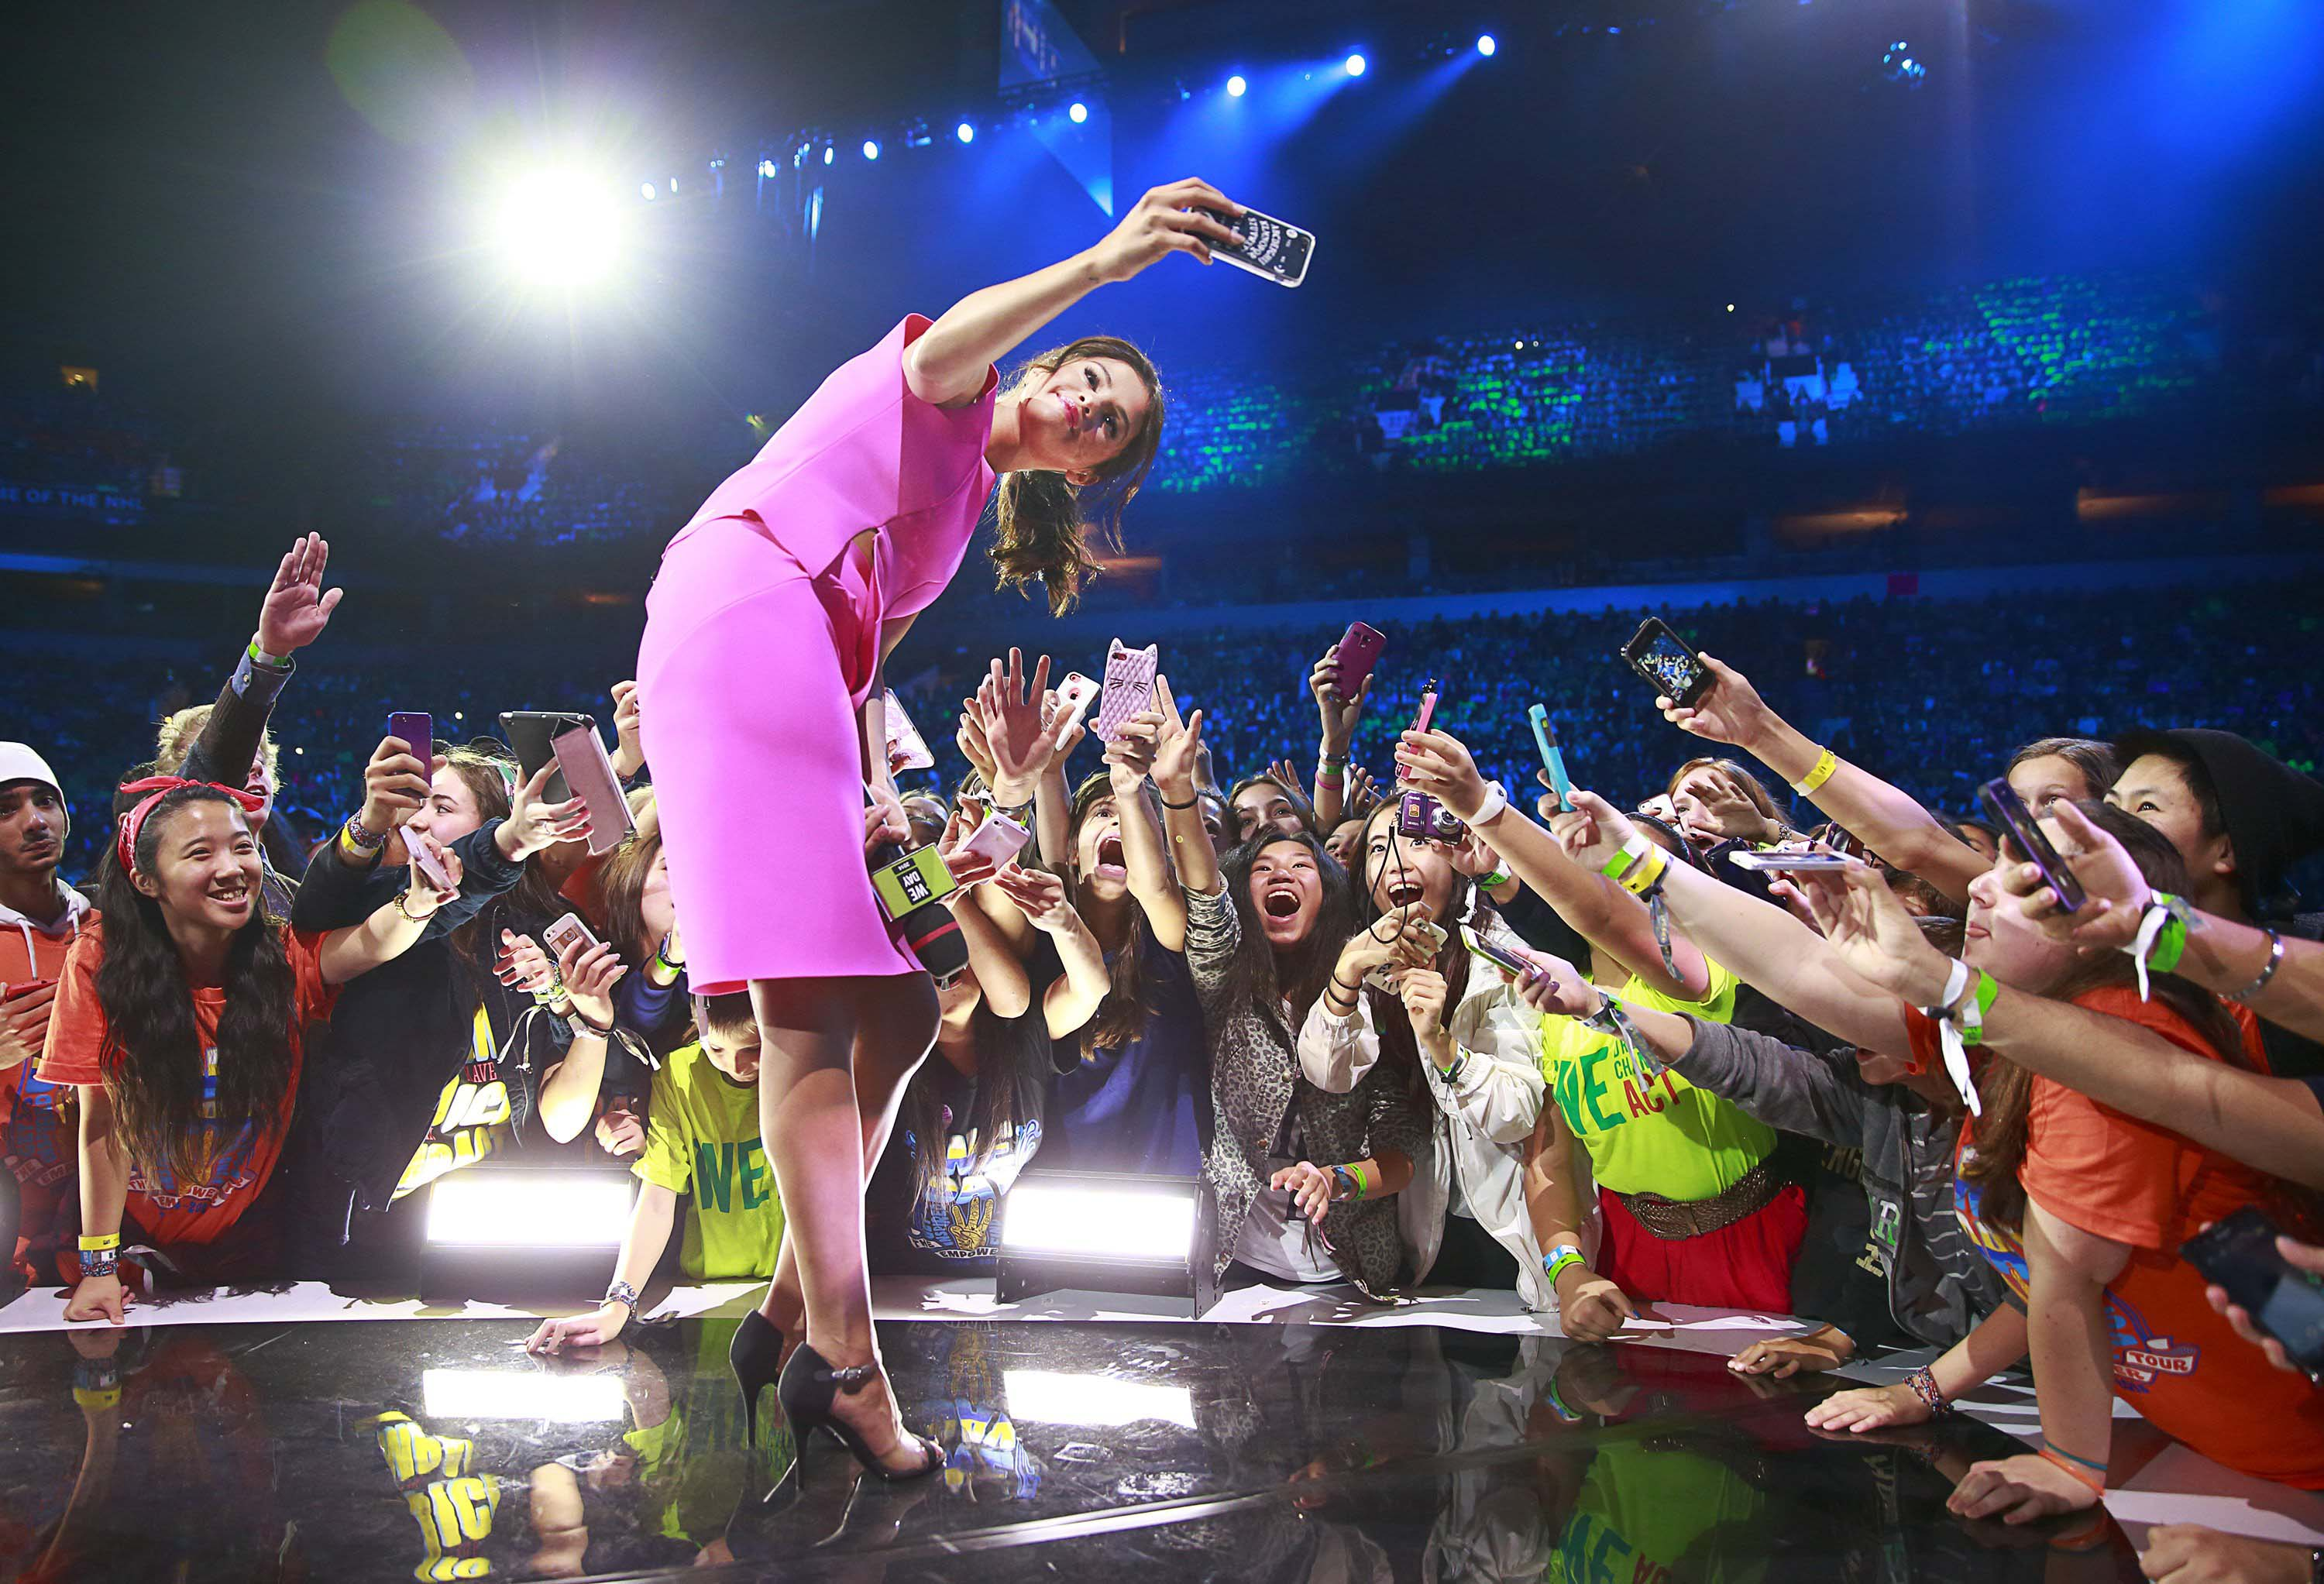 Actress, multi-platinum recording artist and UNICEF Goodwill Ambassador, Selena Gomez inspires 20,000 students at We Day at Rogers Arena on Oct. 22, 2014 in Vancouver, British Columbia, Canada.